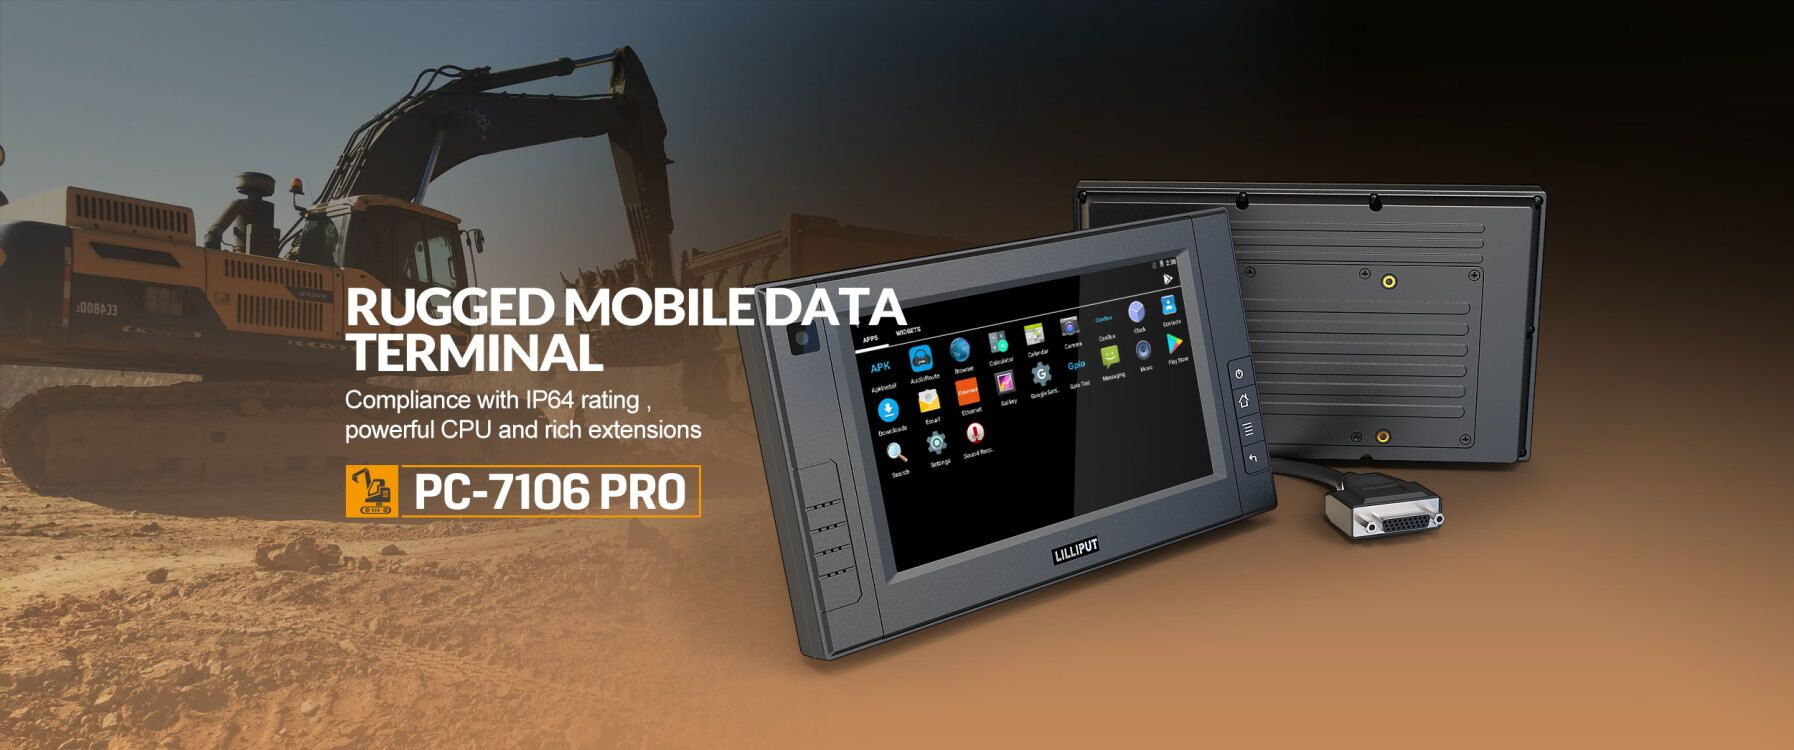 Mobile Data termial vehicle tablet